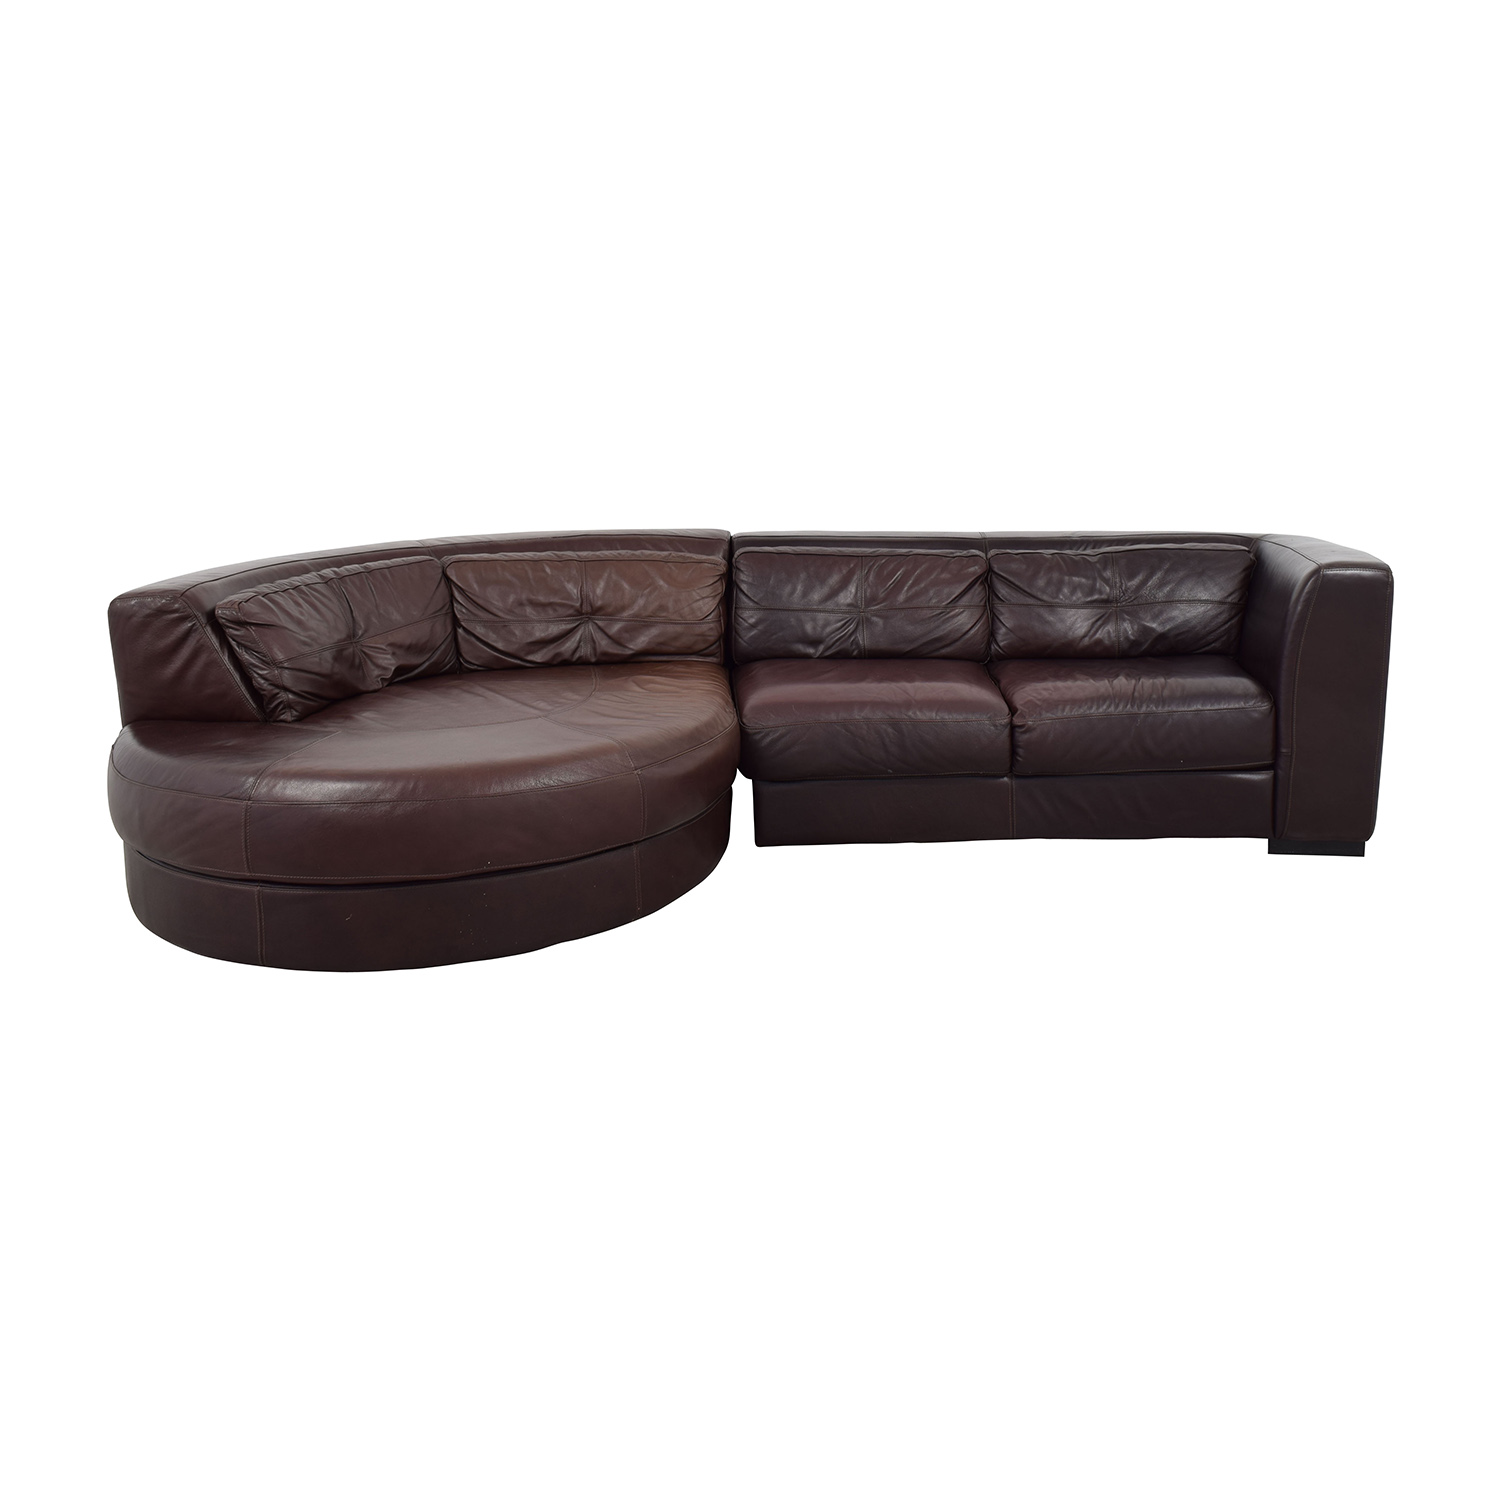 Chateau D'Ax Chateau D'Ax Leather Sectional with Curved Chaise nyc